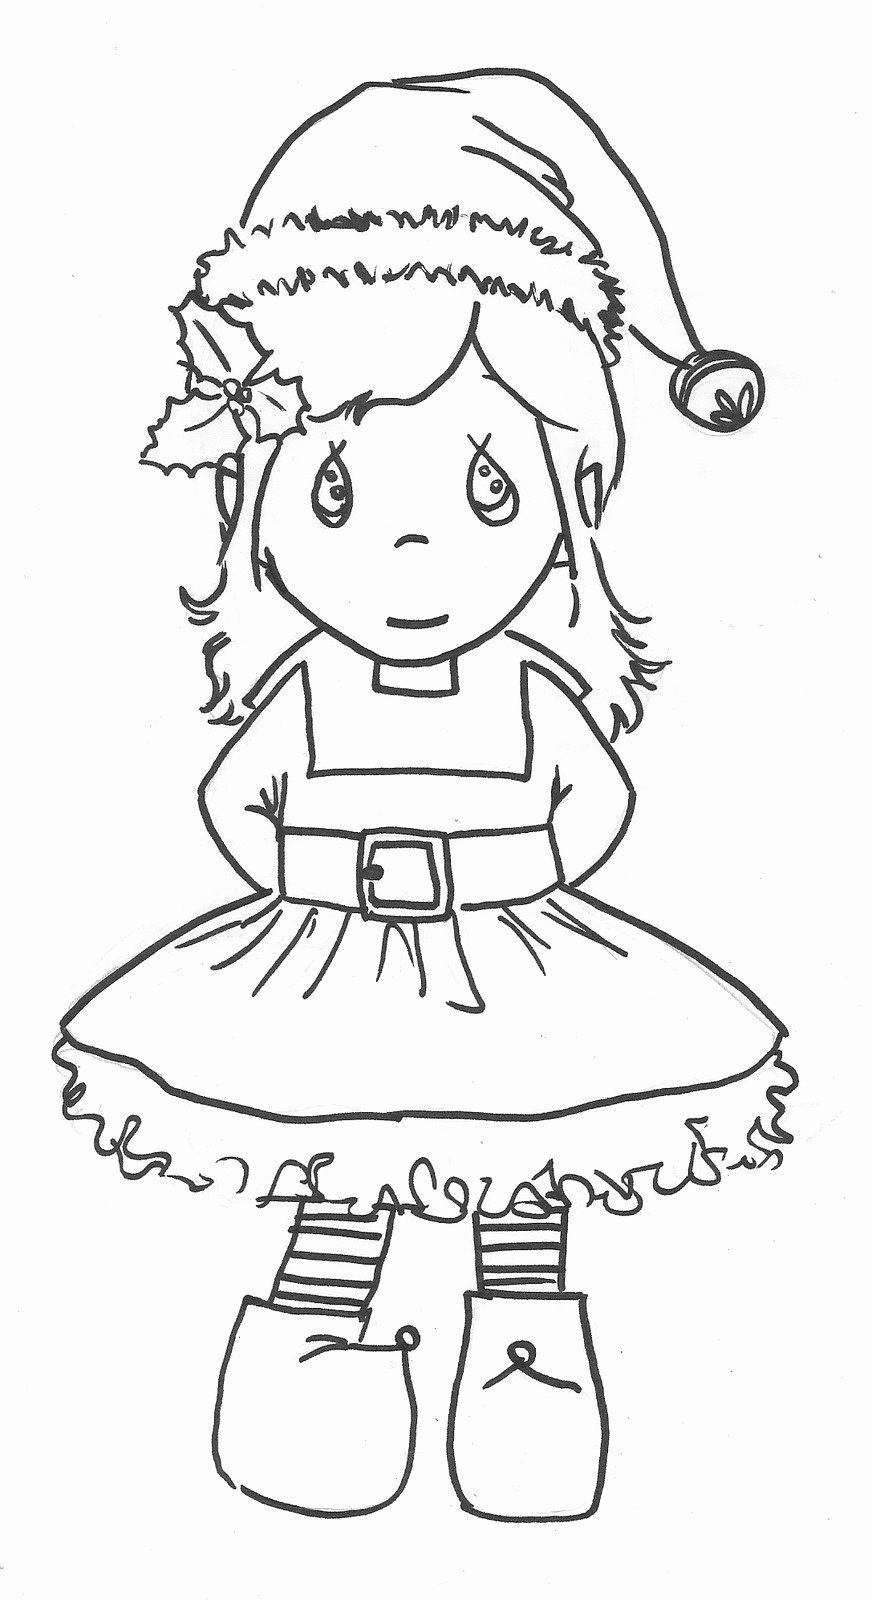 Pin By Sue Vize On Christmas Elf In 2020 Cute Coloring Pages Christmas Coloring Pages Coloring Pages